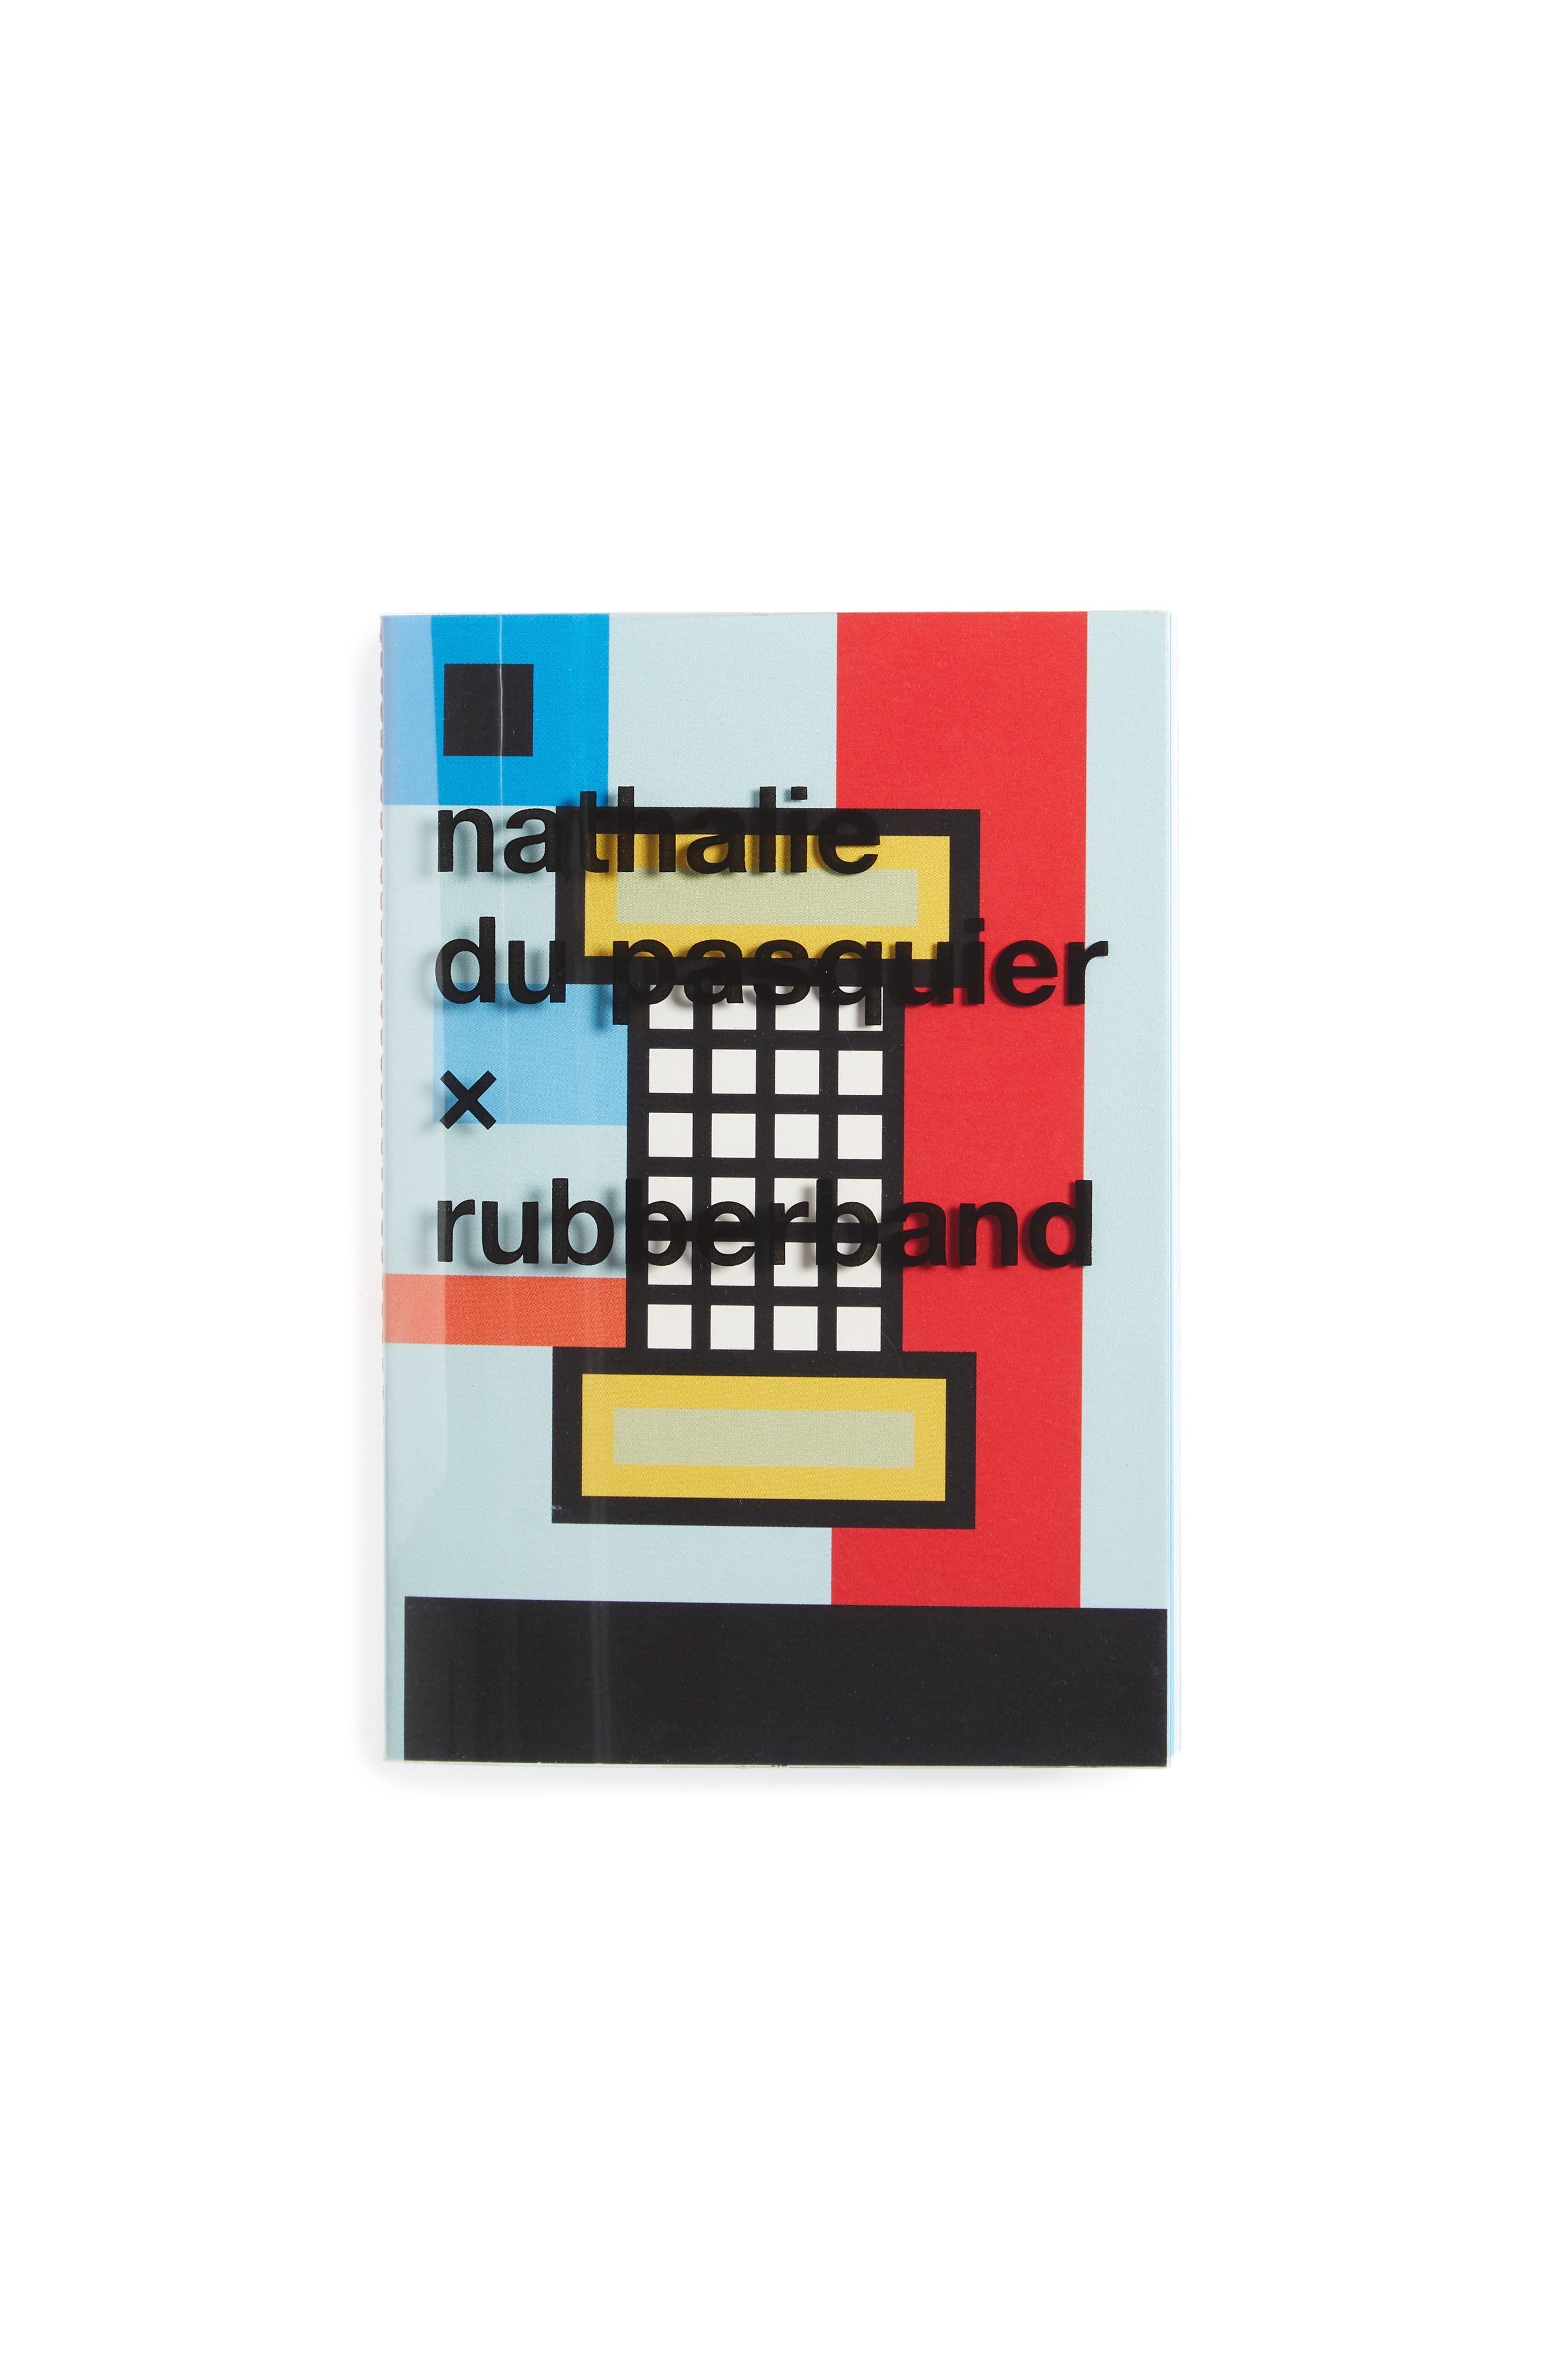 Main Image - MoMA Design Store Nathalie Du Pasquier For Rubberband Small Notebook